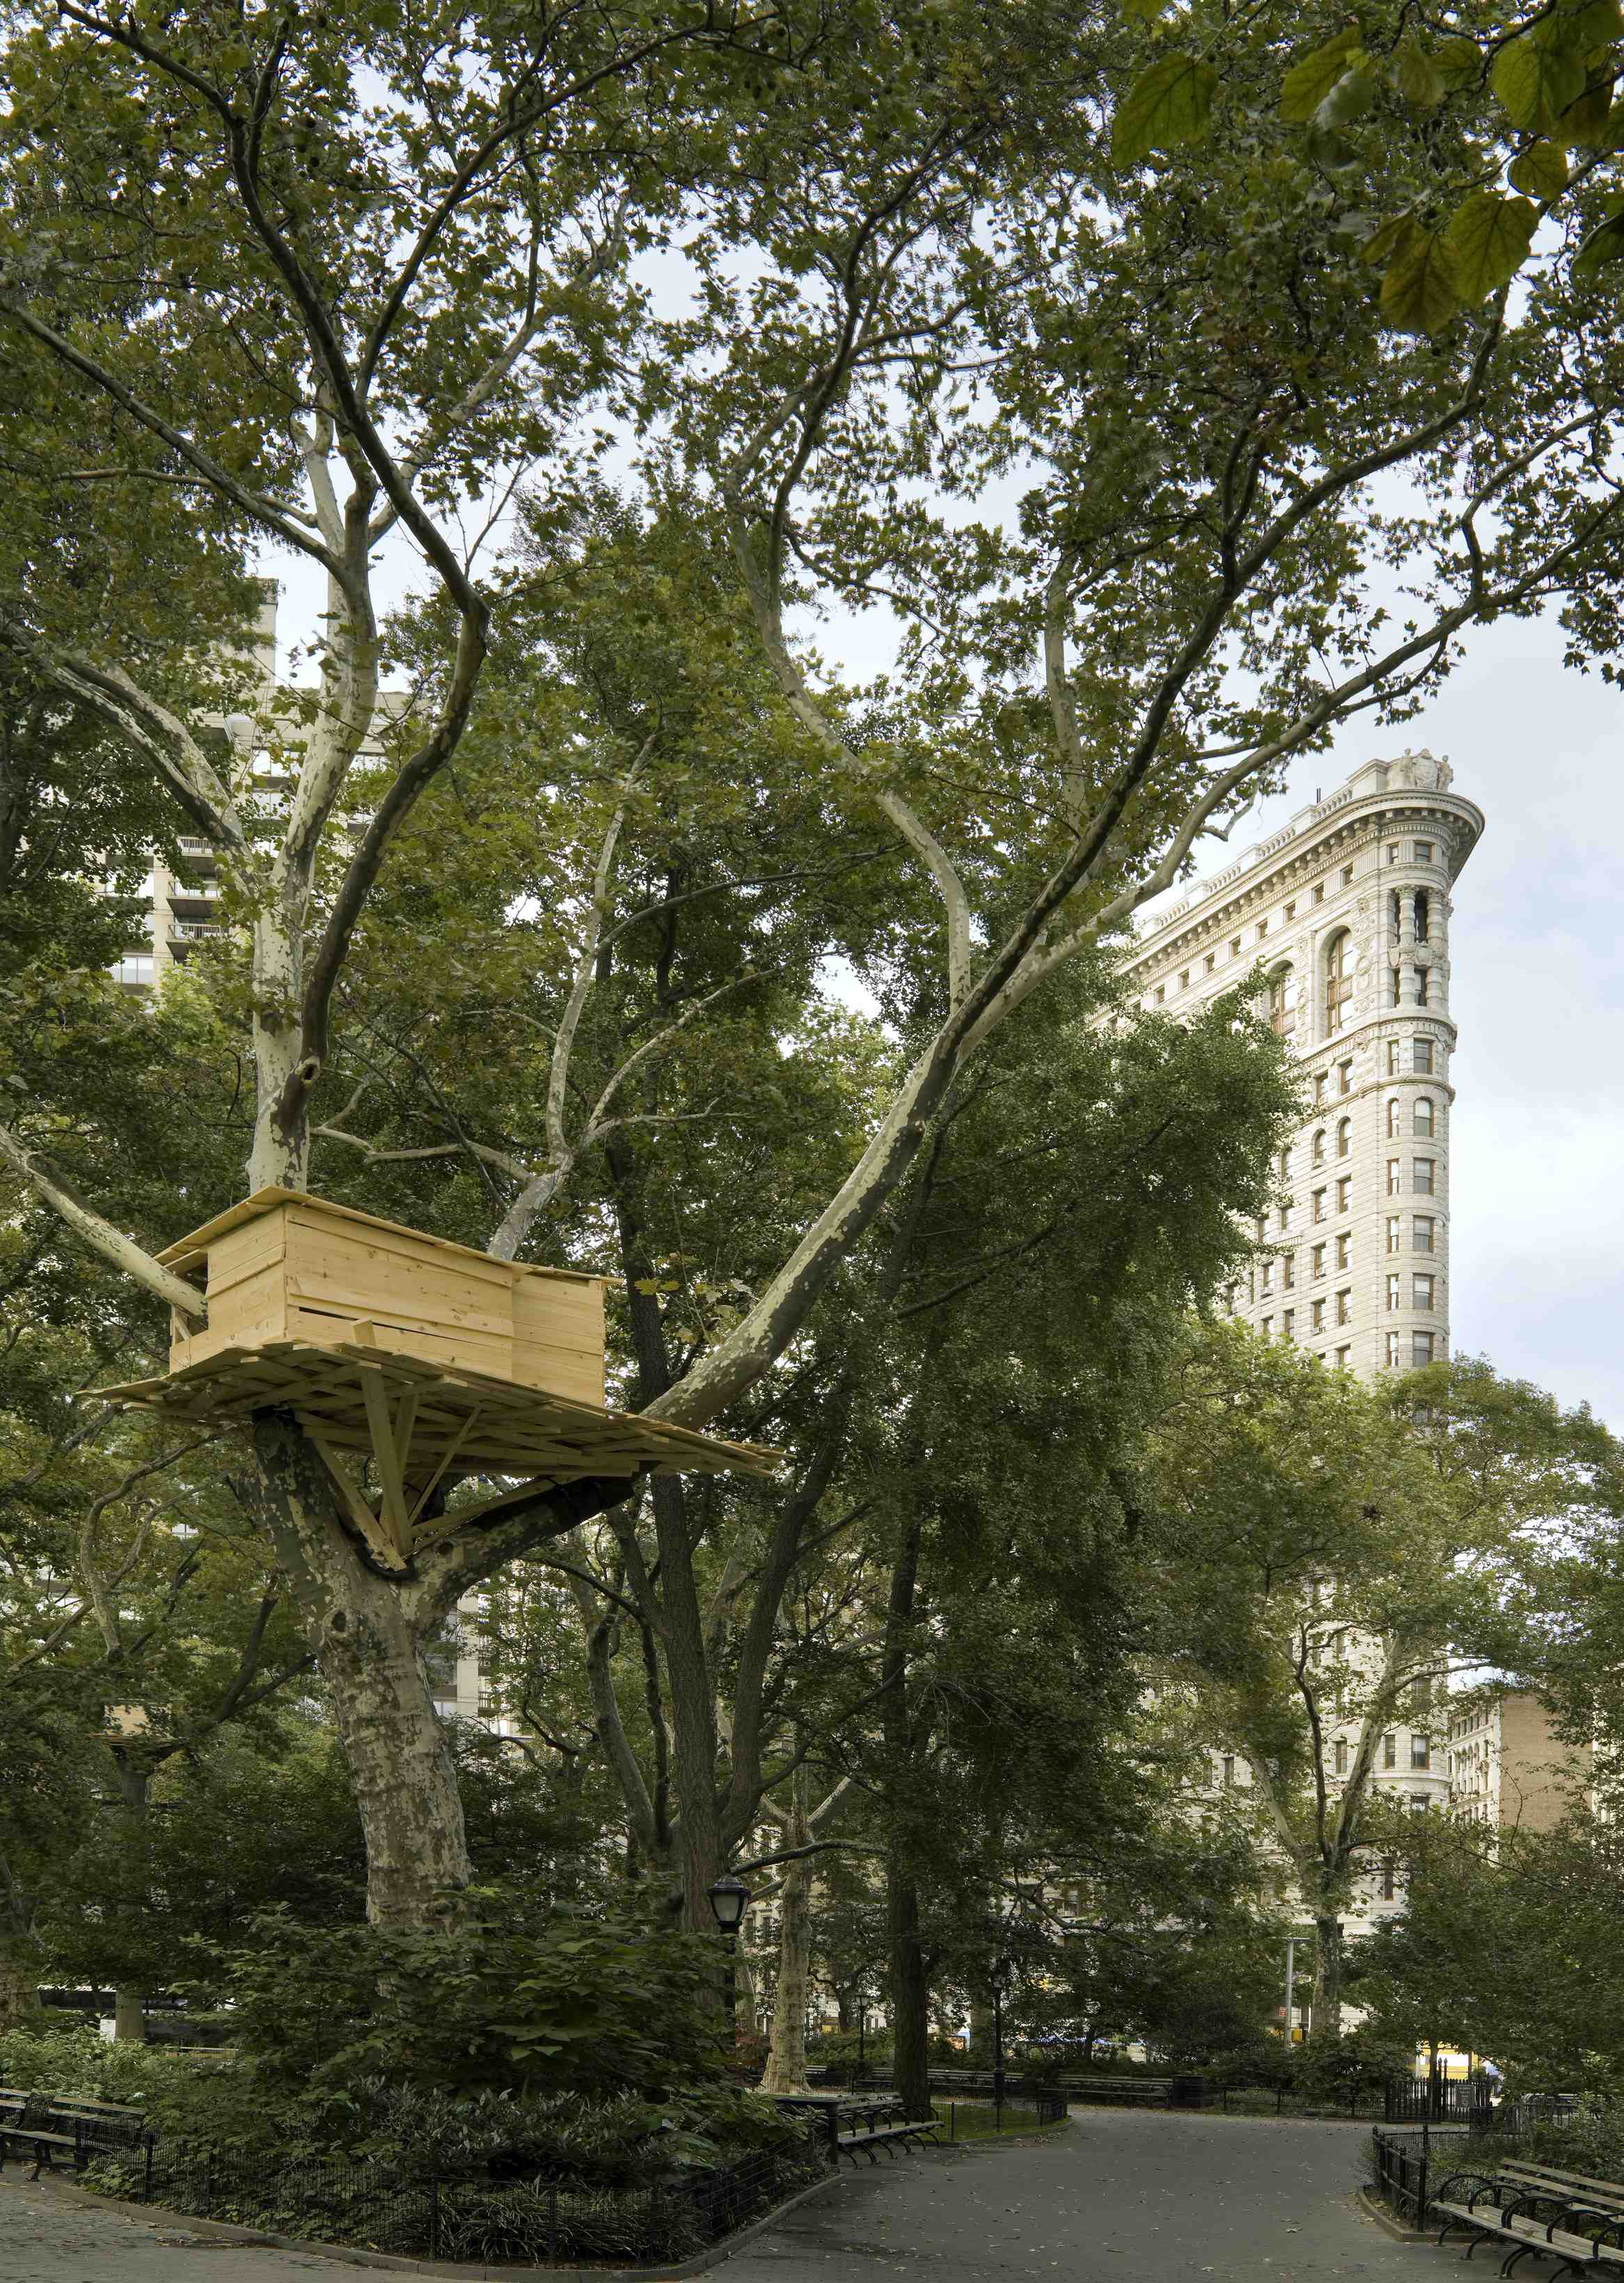 Tadashi Kawamatas 2008 Tree Huts Project in Paris and New York City